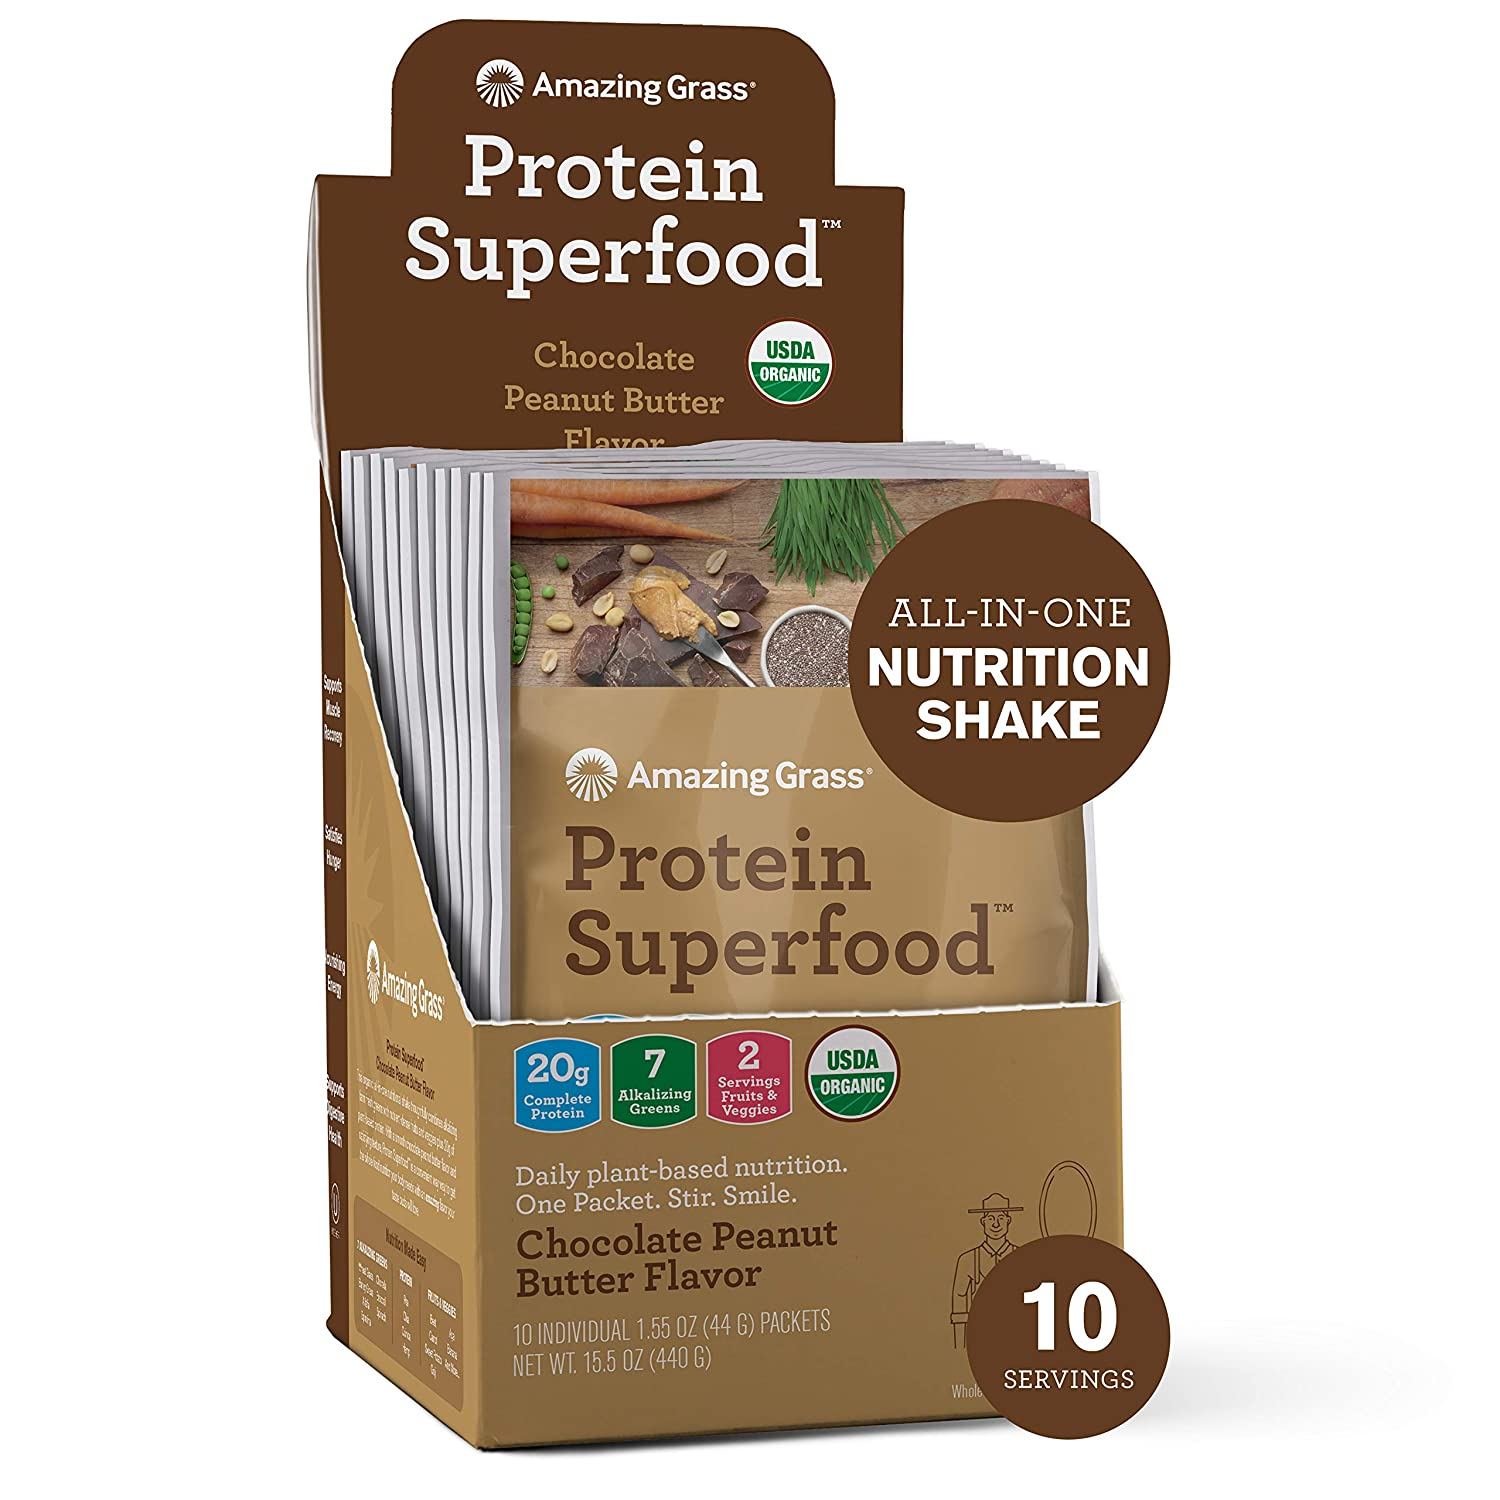 Amazing Grass Protein Superfood: Vegan Protein Powder, All-in-One Nutrition Shake, Peanut Butter, 10 Single Serve Packets